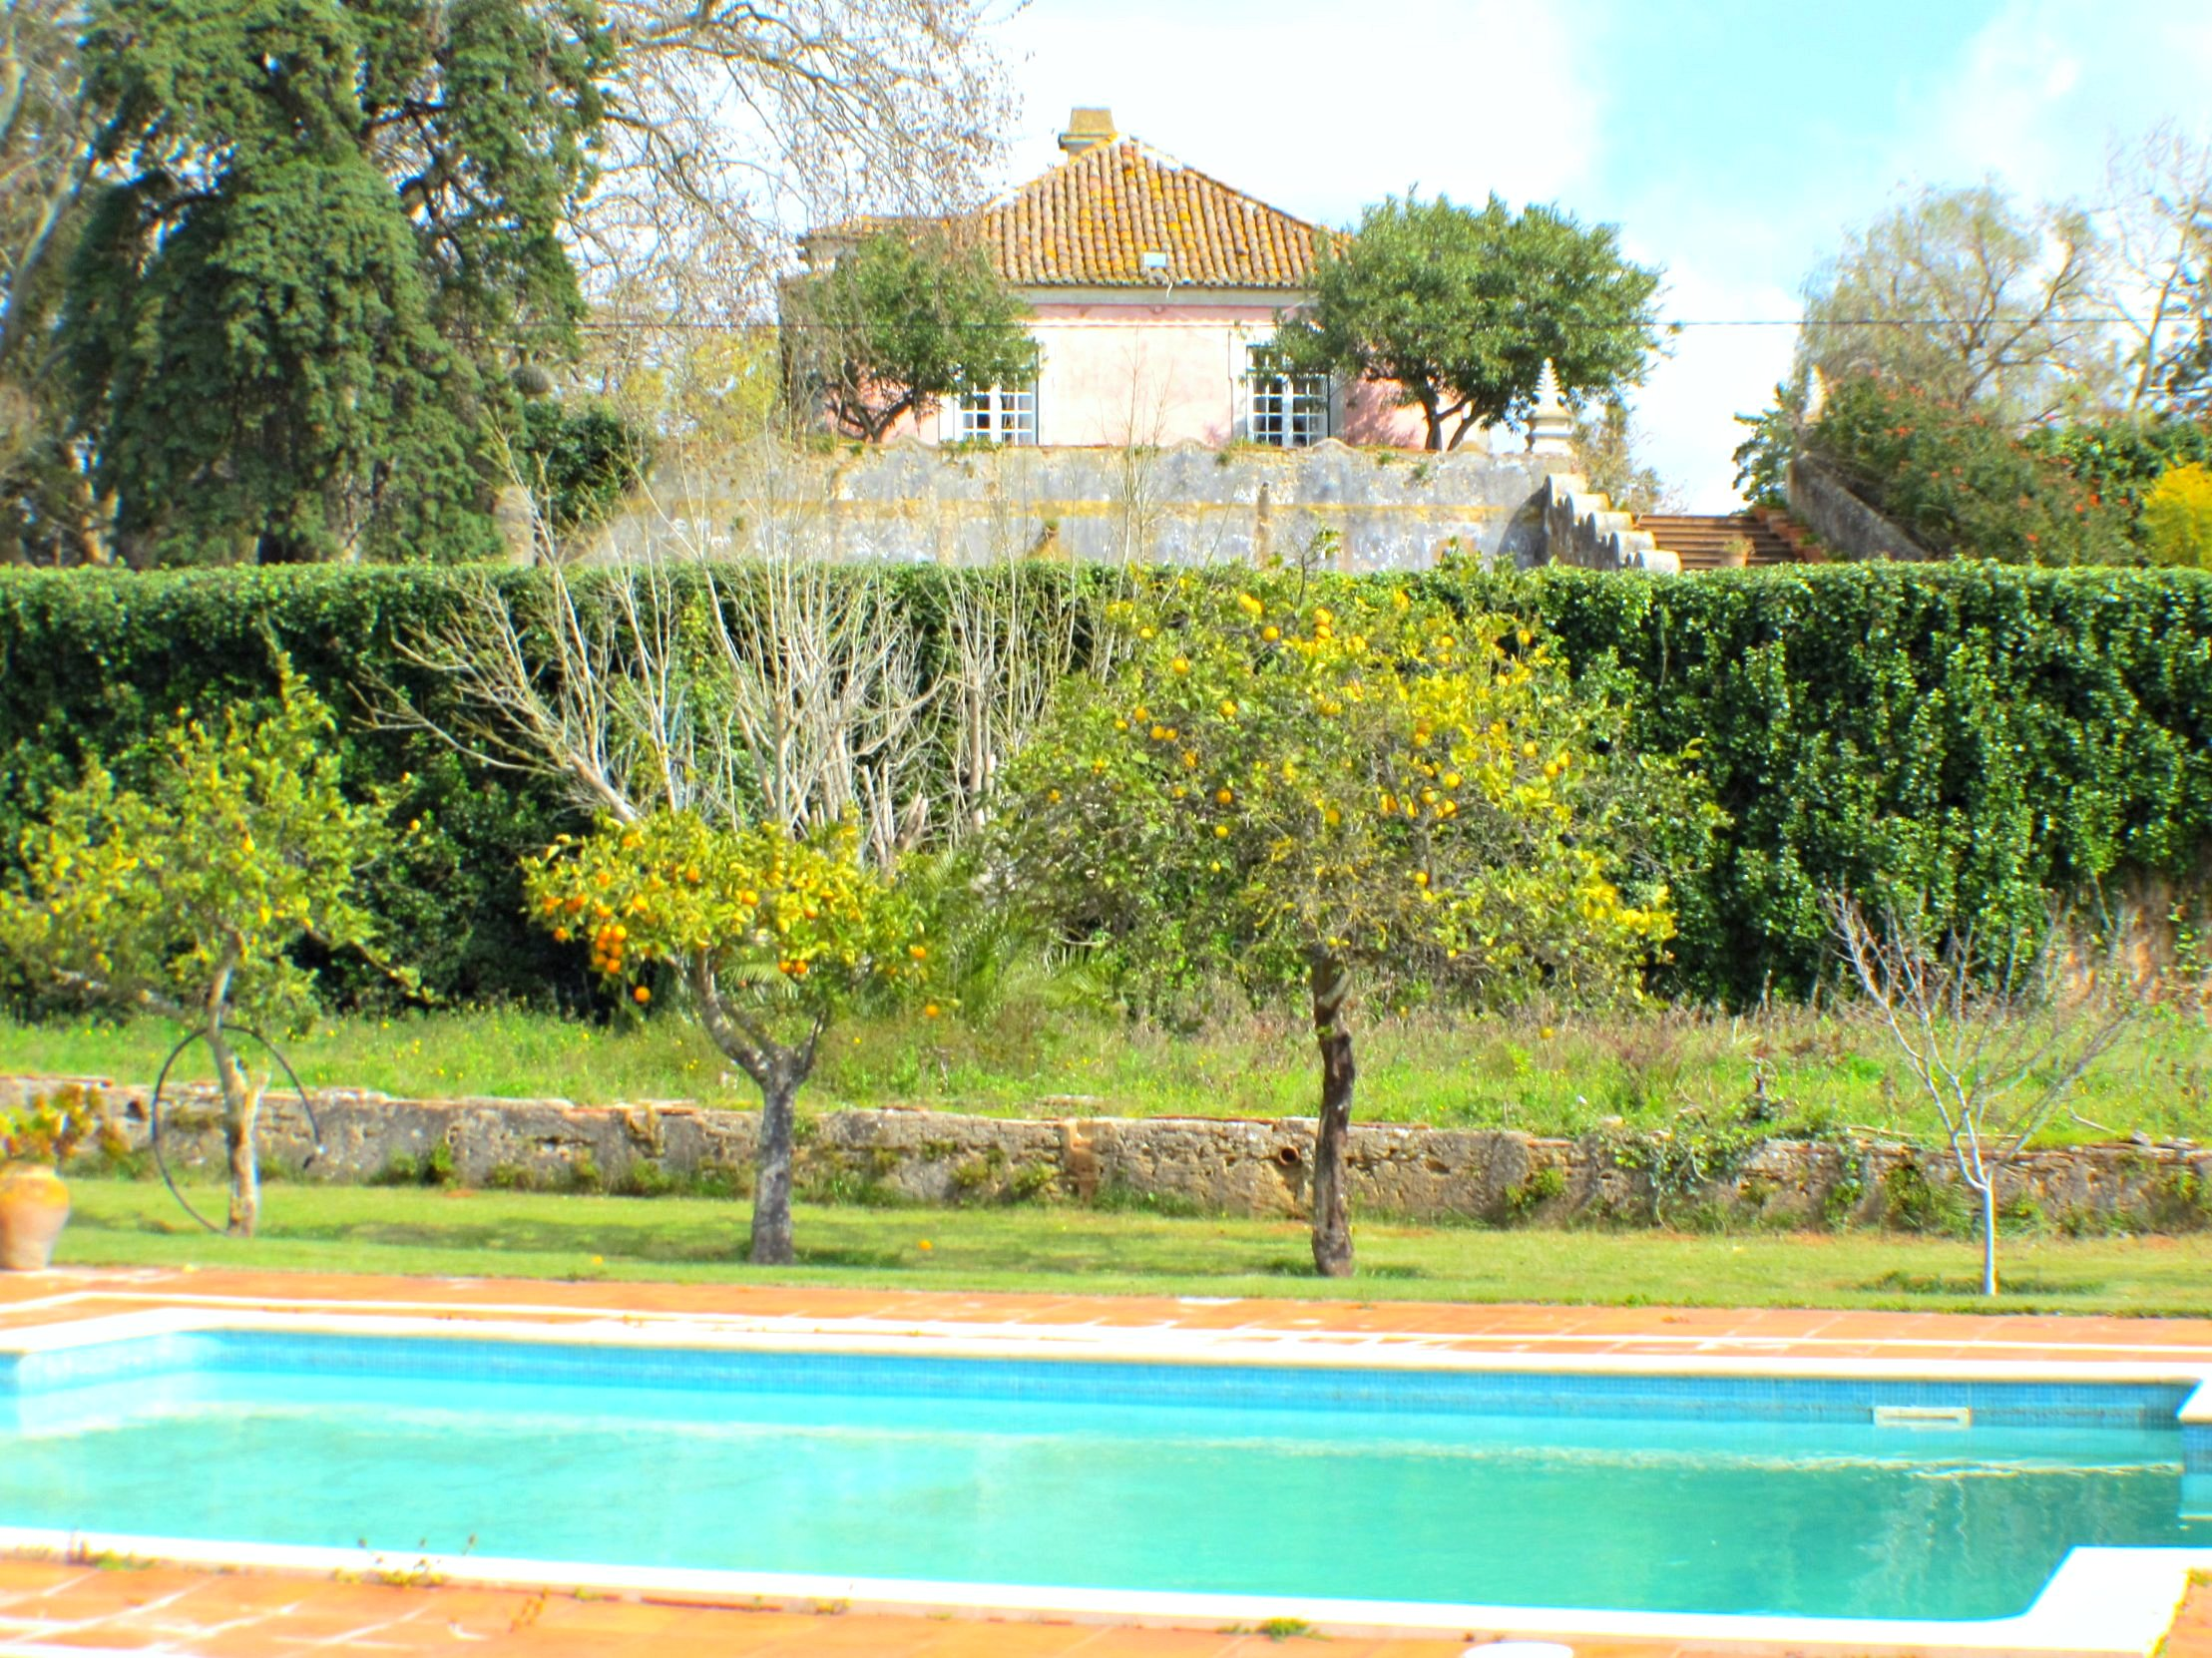 Quinta da Bela Vista – Grand 18th Century manor house with private pool and tennis